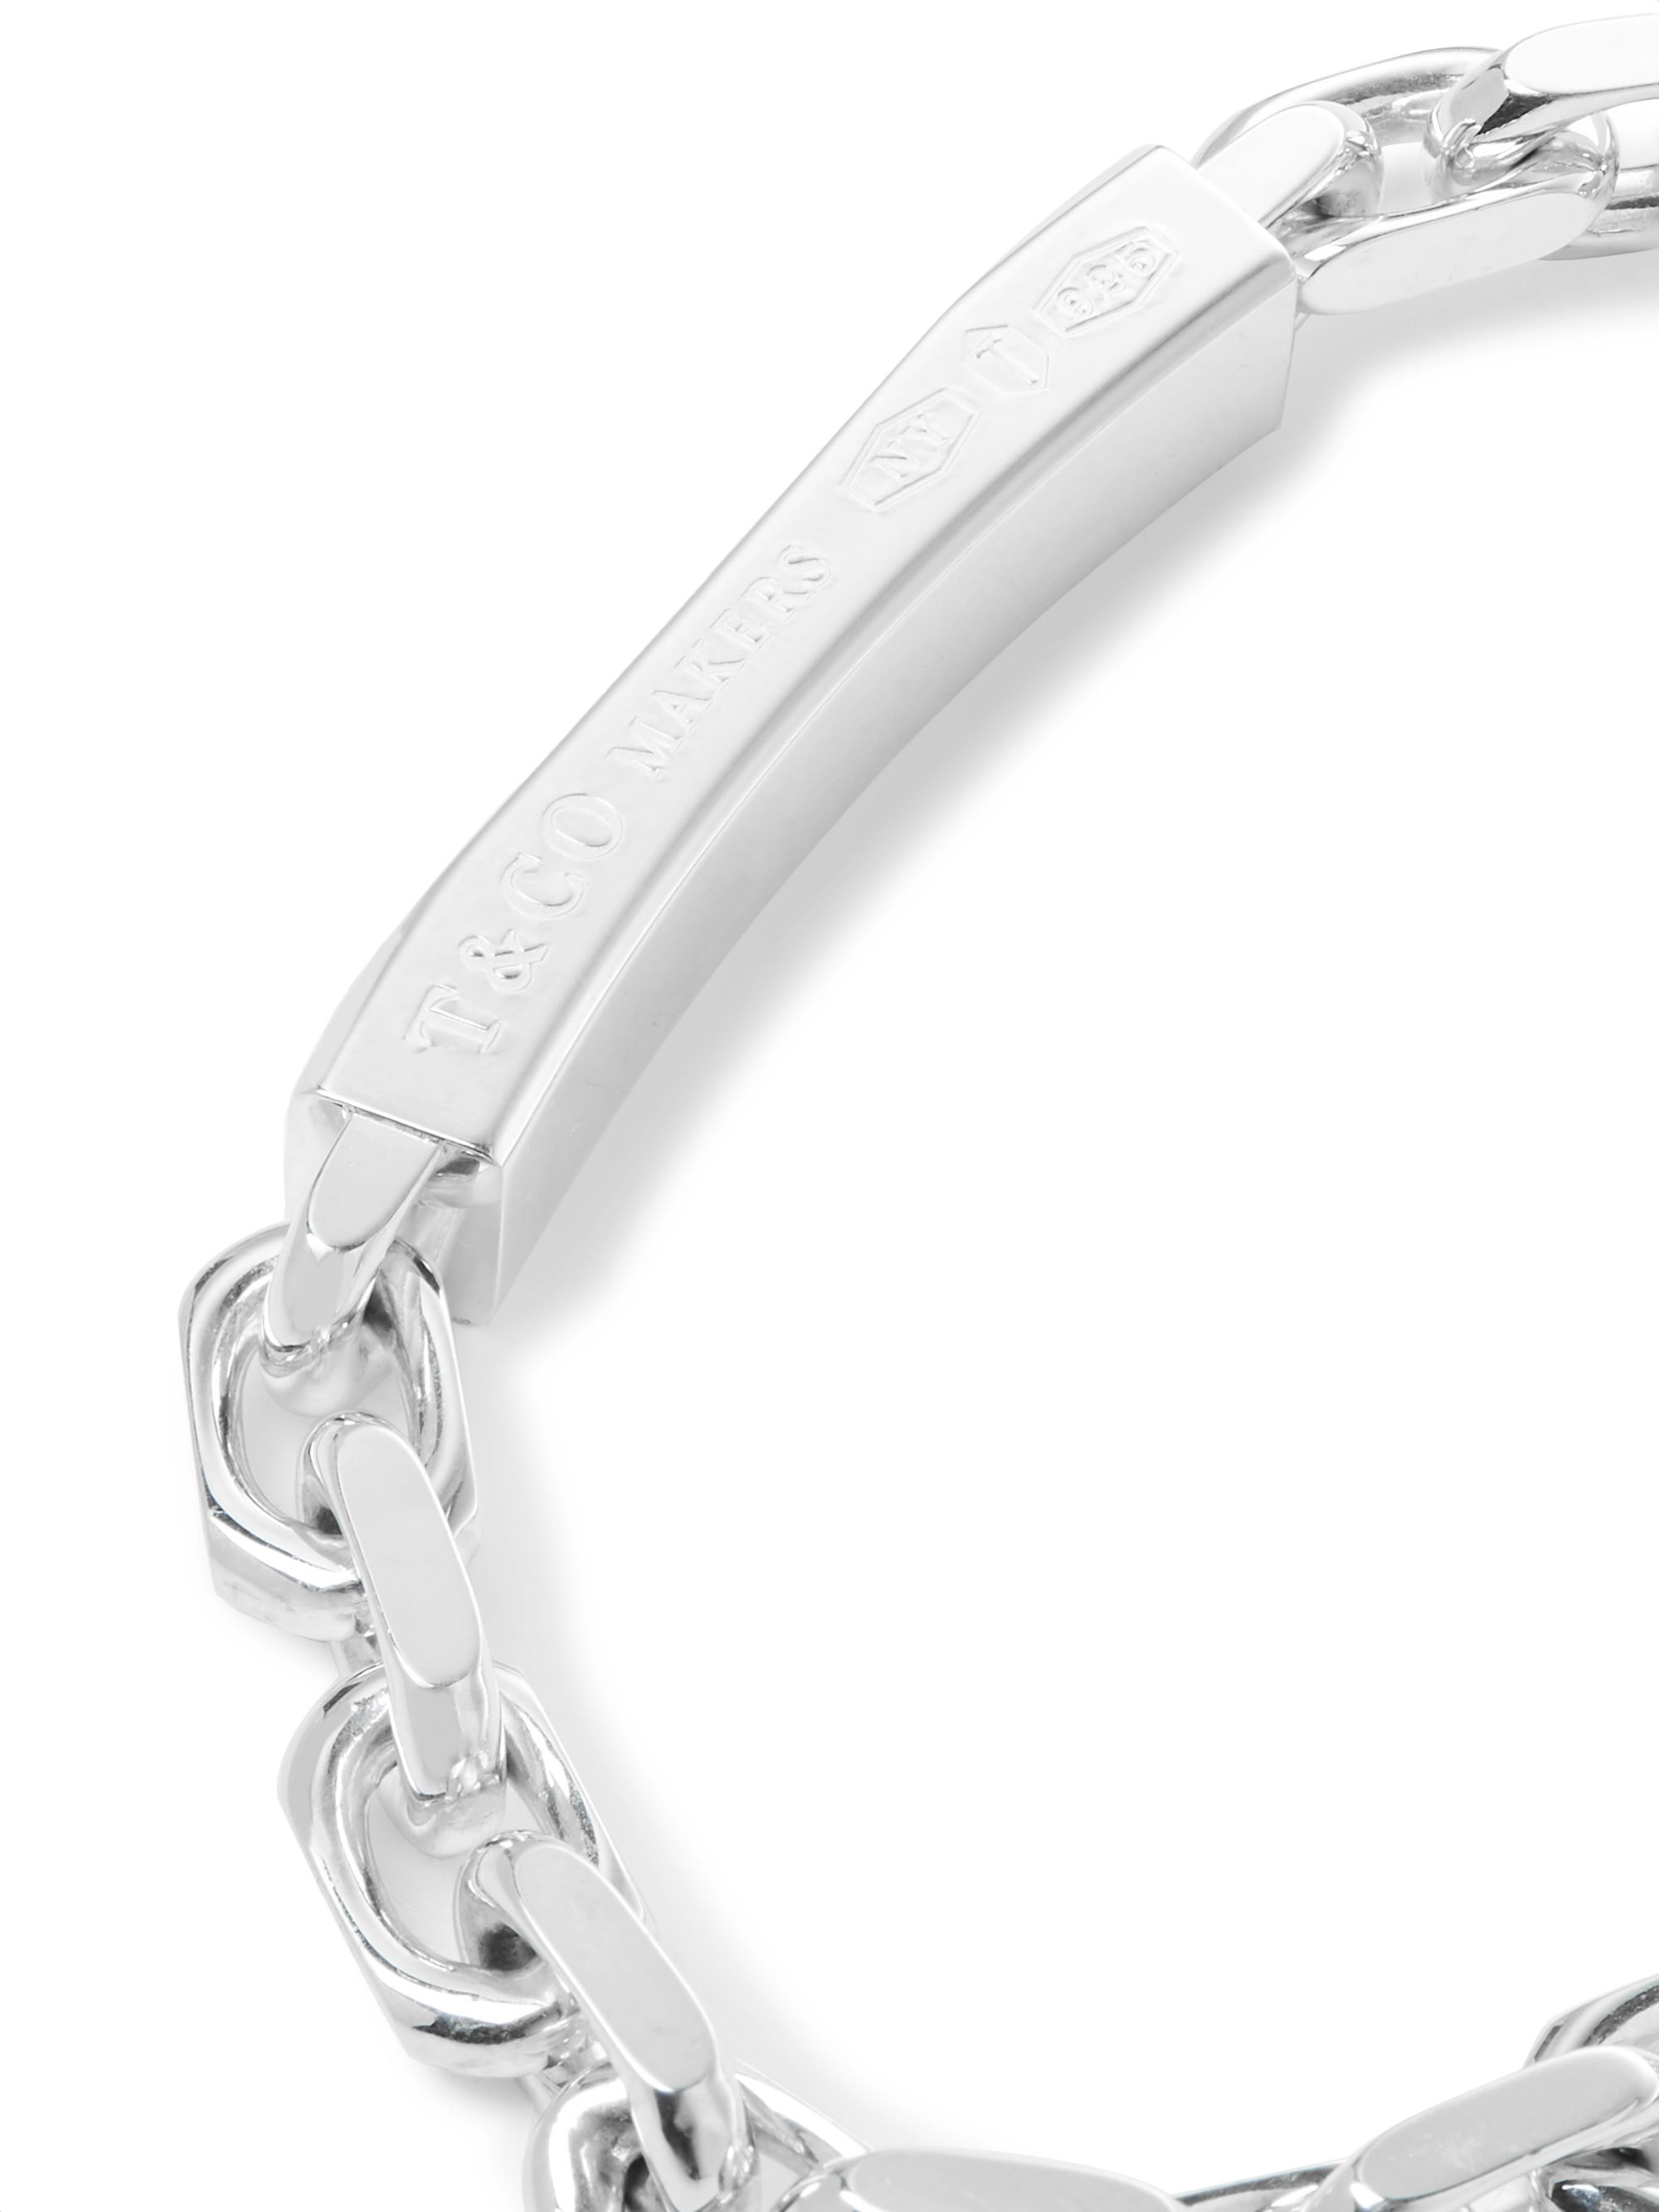 Tiffany & Co. Tiffany 1837 Makers Sterling Silver I.D. Chain Bracelet